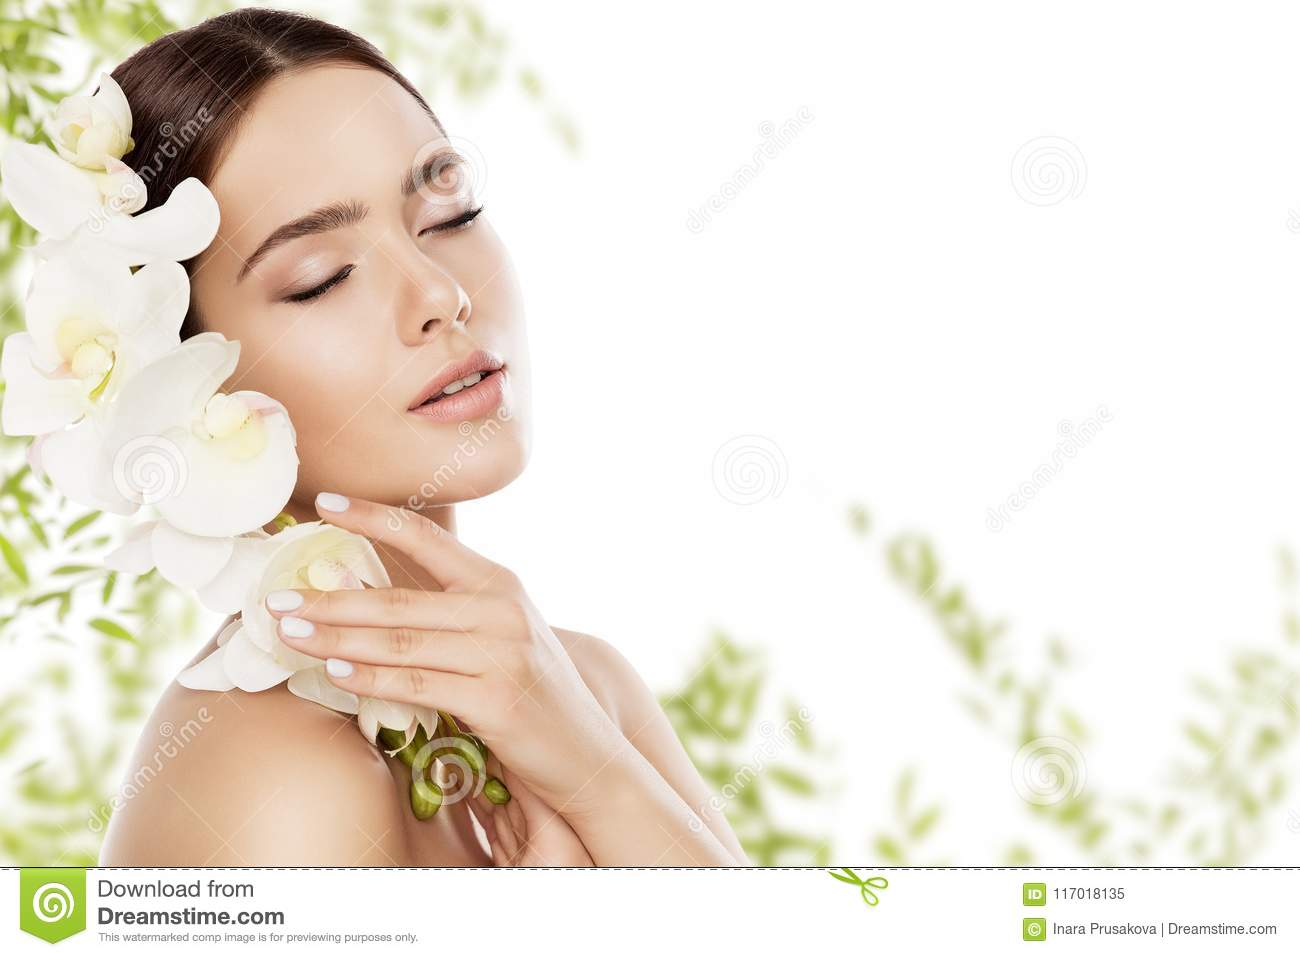 Beauty Skin Care and Face Makeup, Woman Skincare Natural Make Up